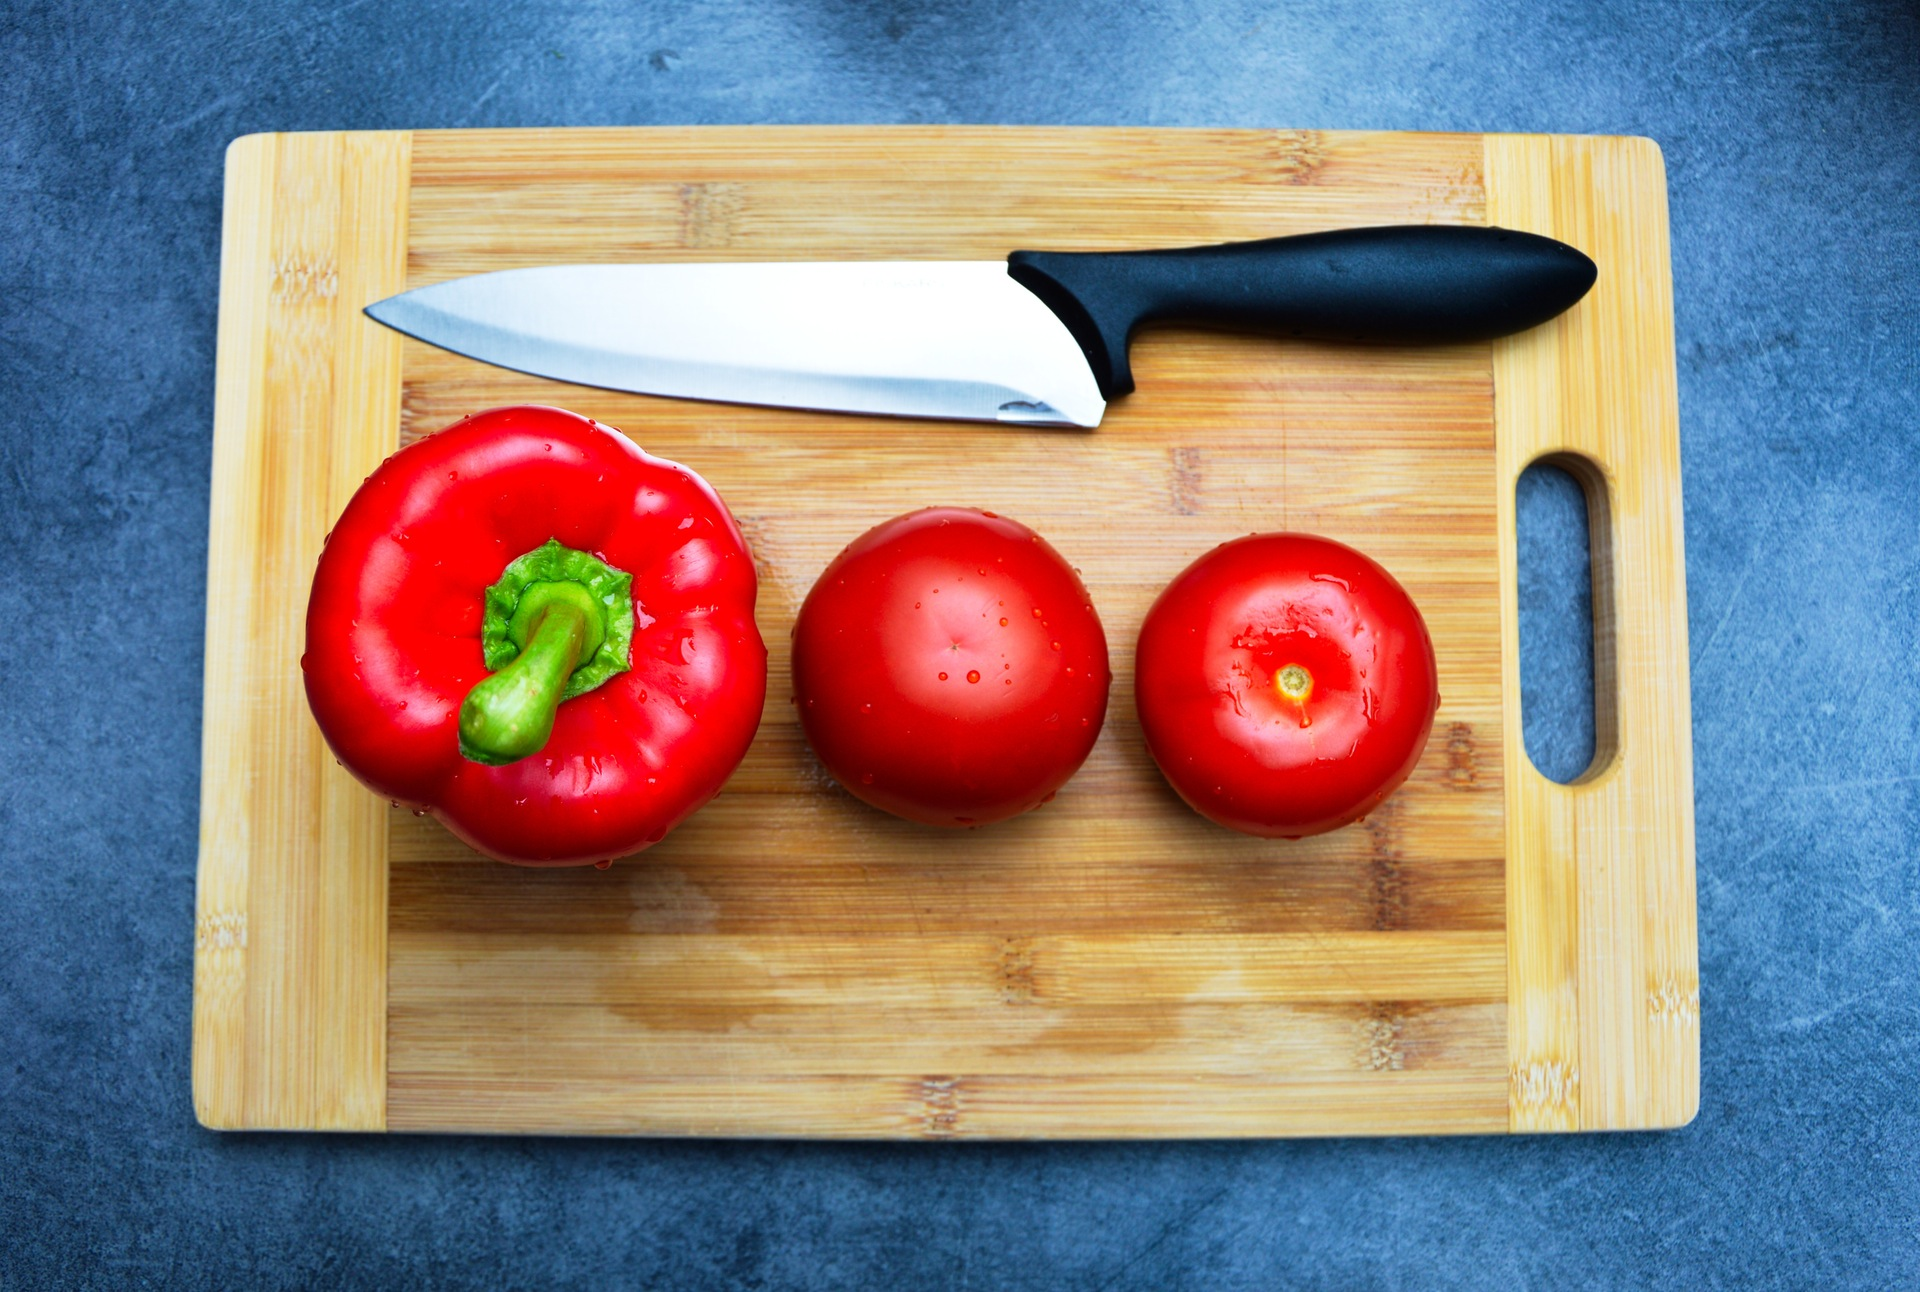 kitchen-cutting-board-cooking-bell-pepper.jpg